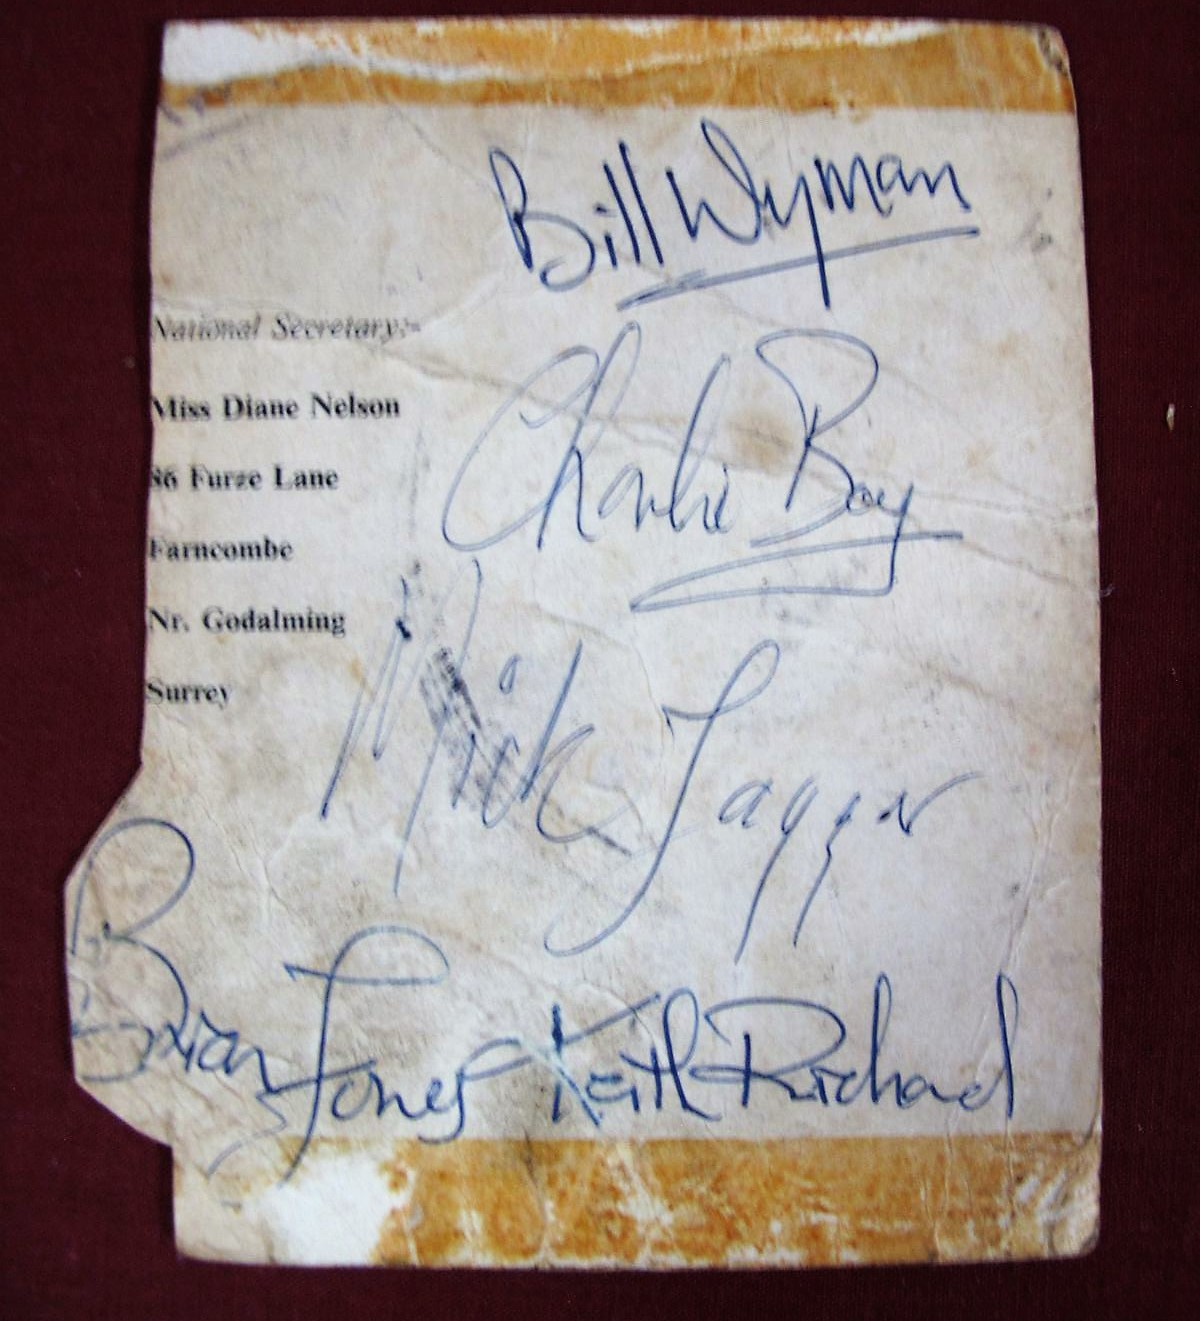 Lot 20 - Rolling Stones - A Circa 1960's Black and White Promotional Card of the Group, with autographs,